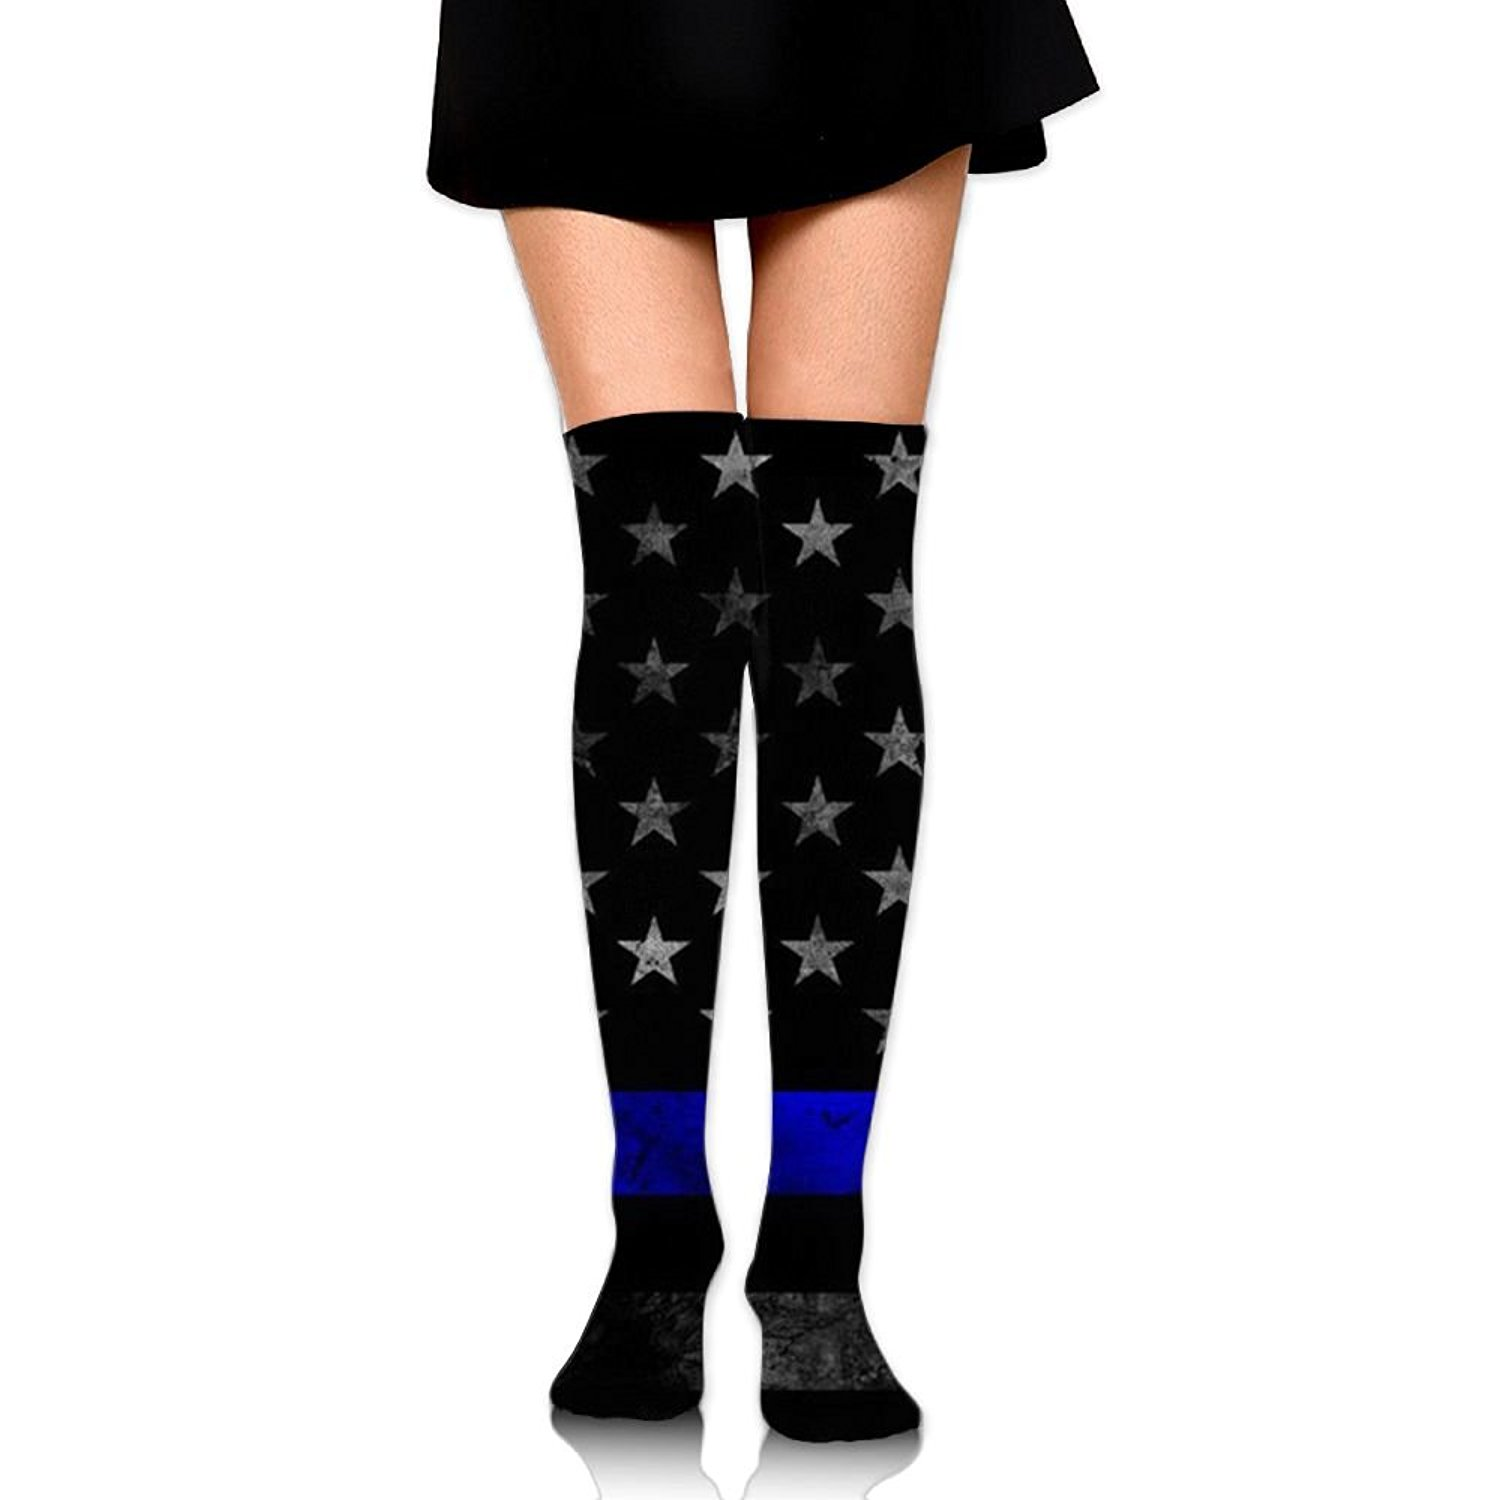 SOURCE POINT Womwn's Long Socks Vintage Thin Blue Lines Printing Stocking Sexy Knee High Socks